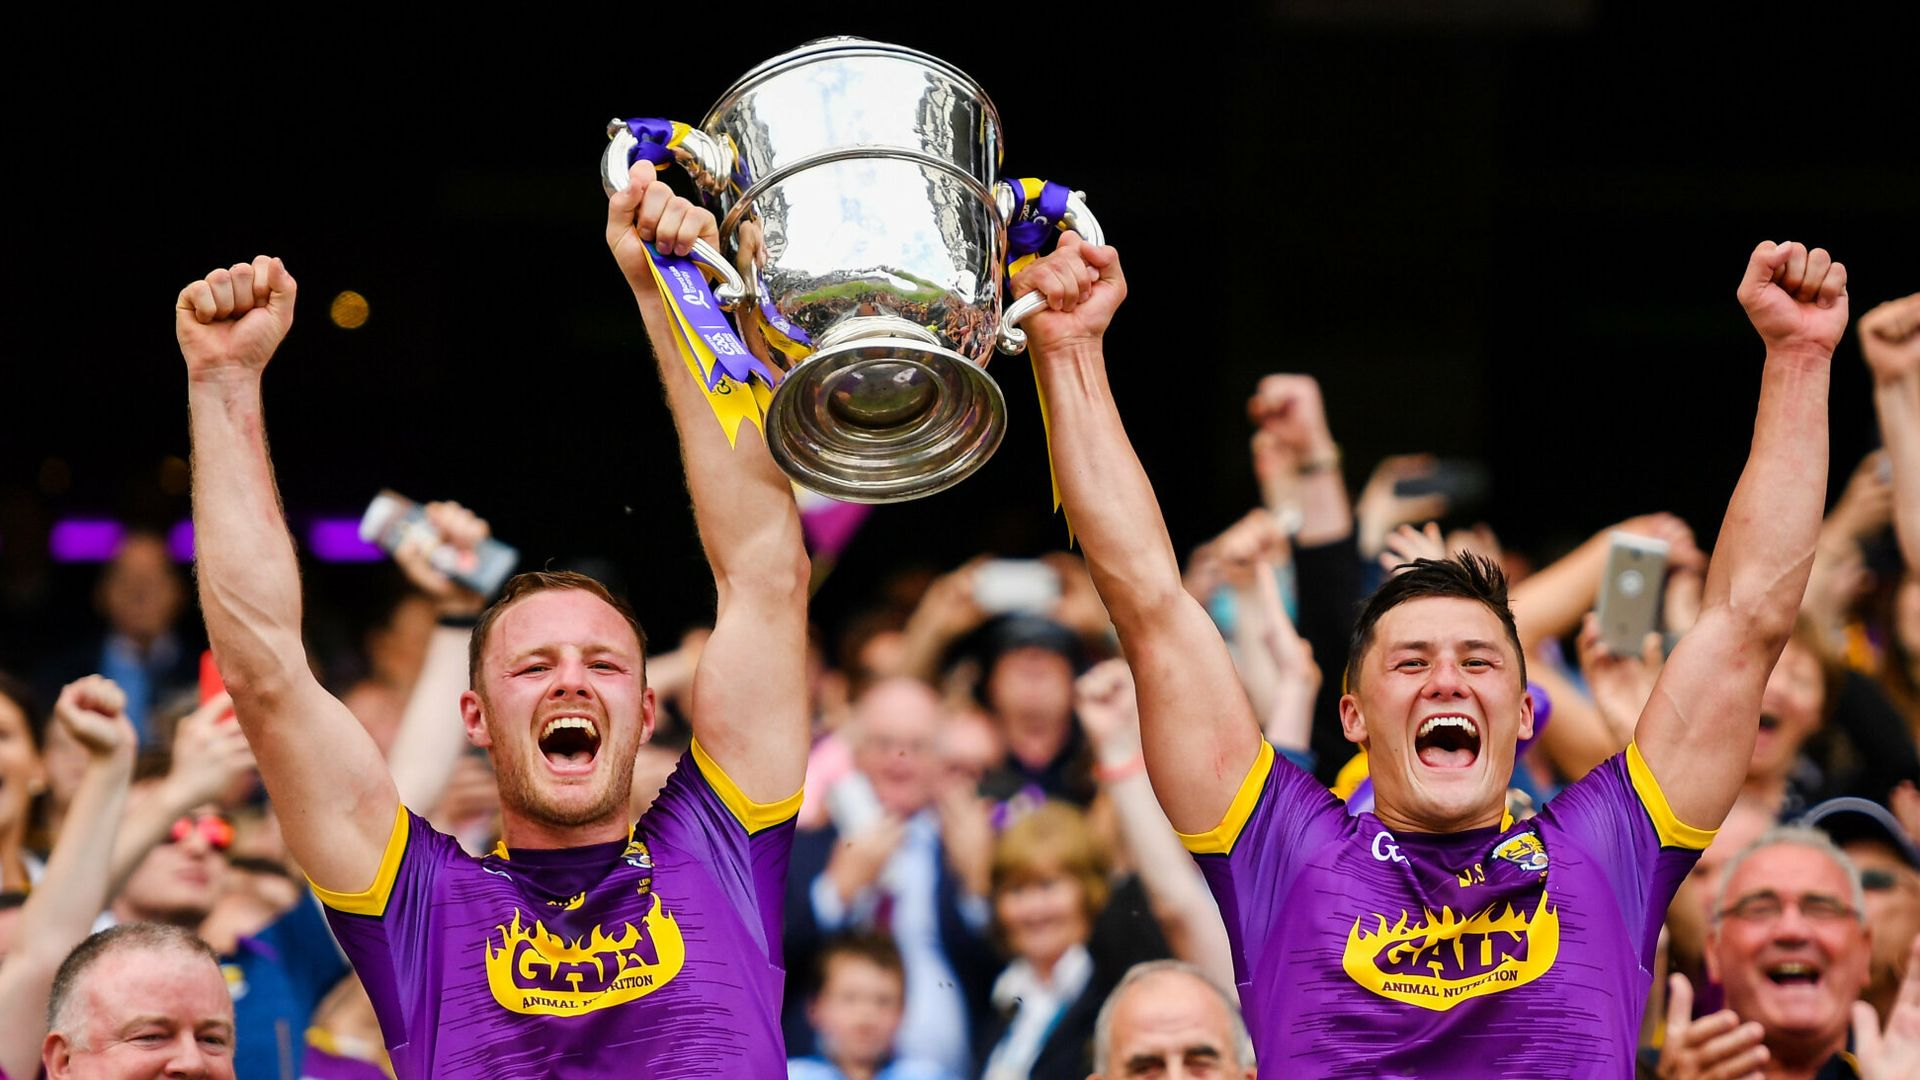 Leinster SHC preview: Can the Model double down?